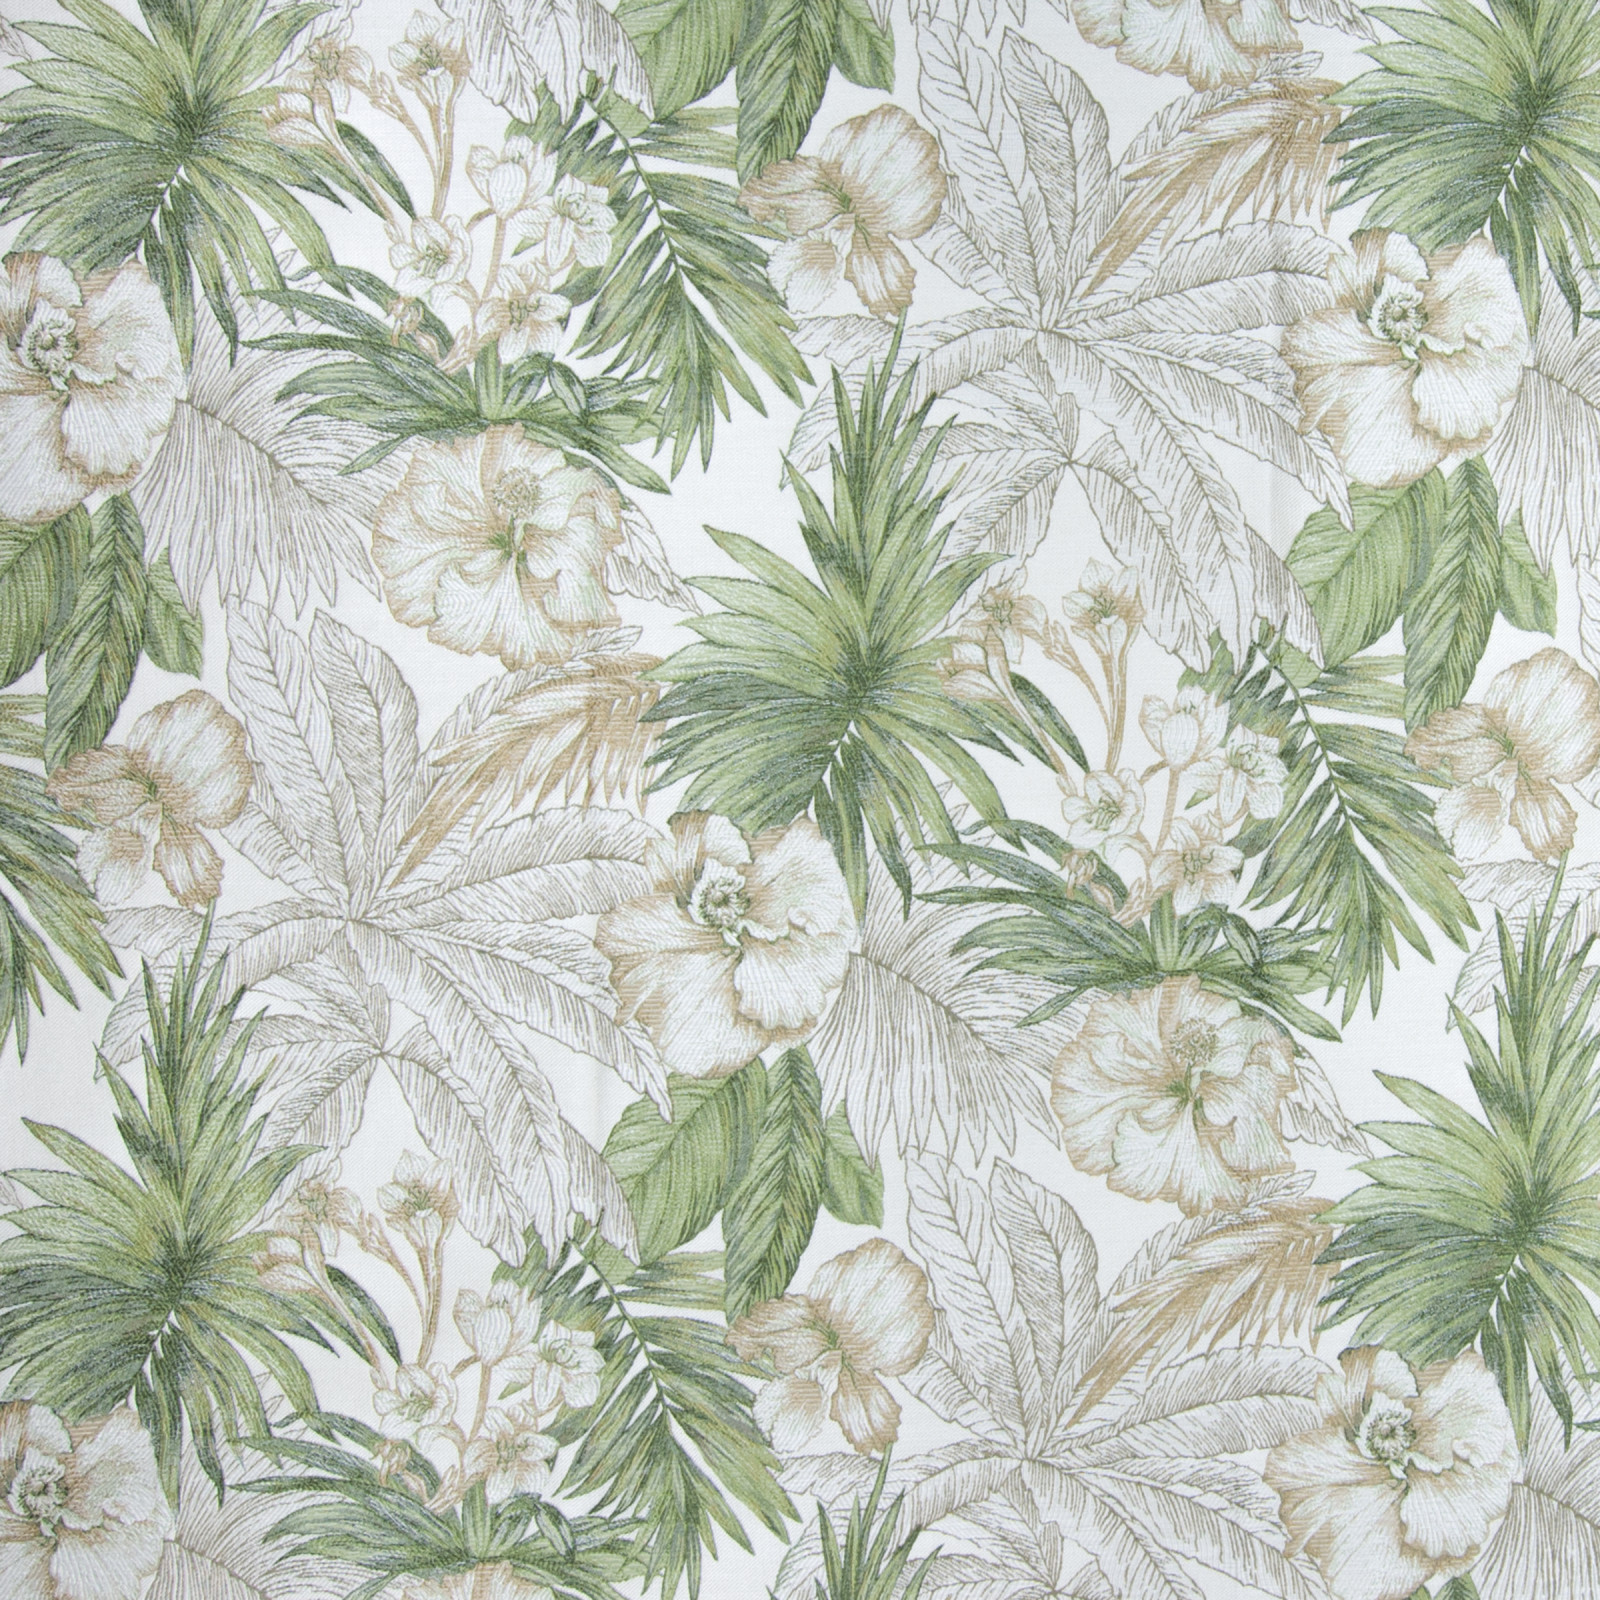 B2800 Tropic Greenhouse Fabrics